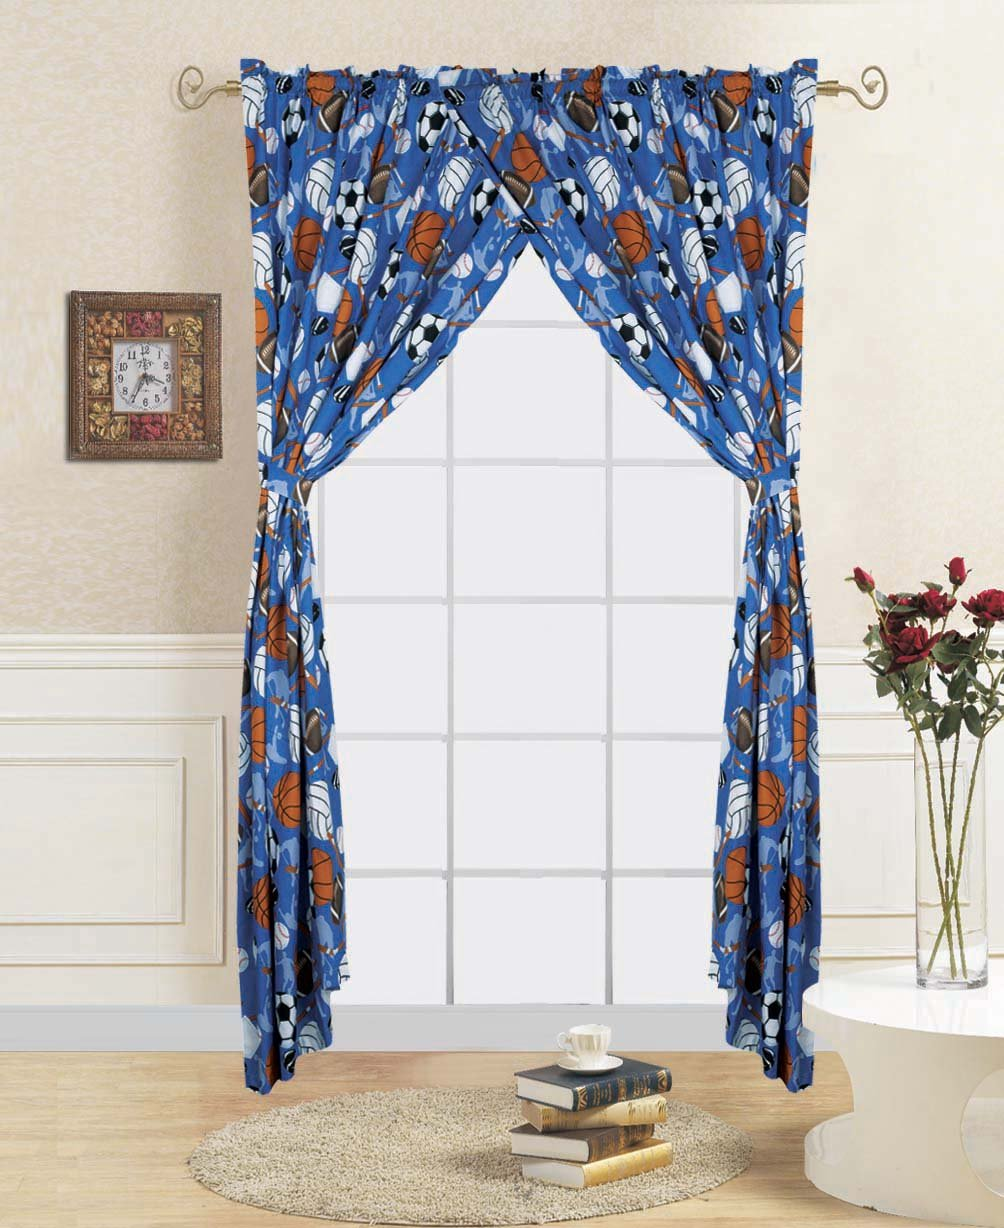 Linens And More blue sport curtain (4 piece set) (volleyball, soccer, football, basketball)